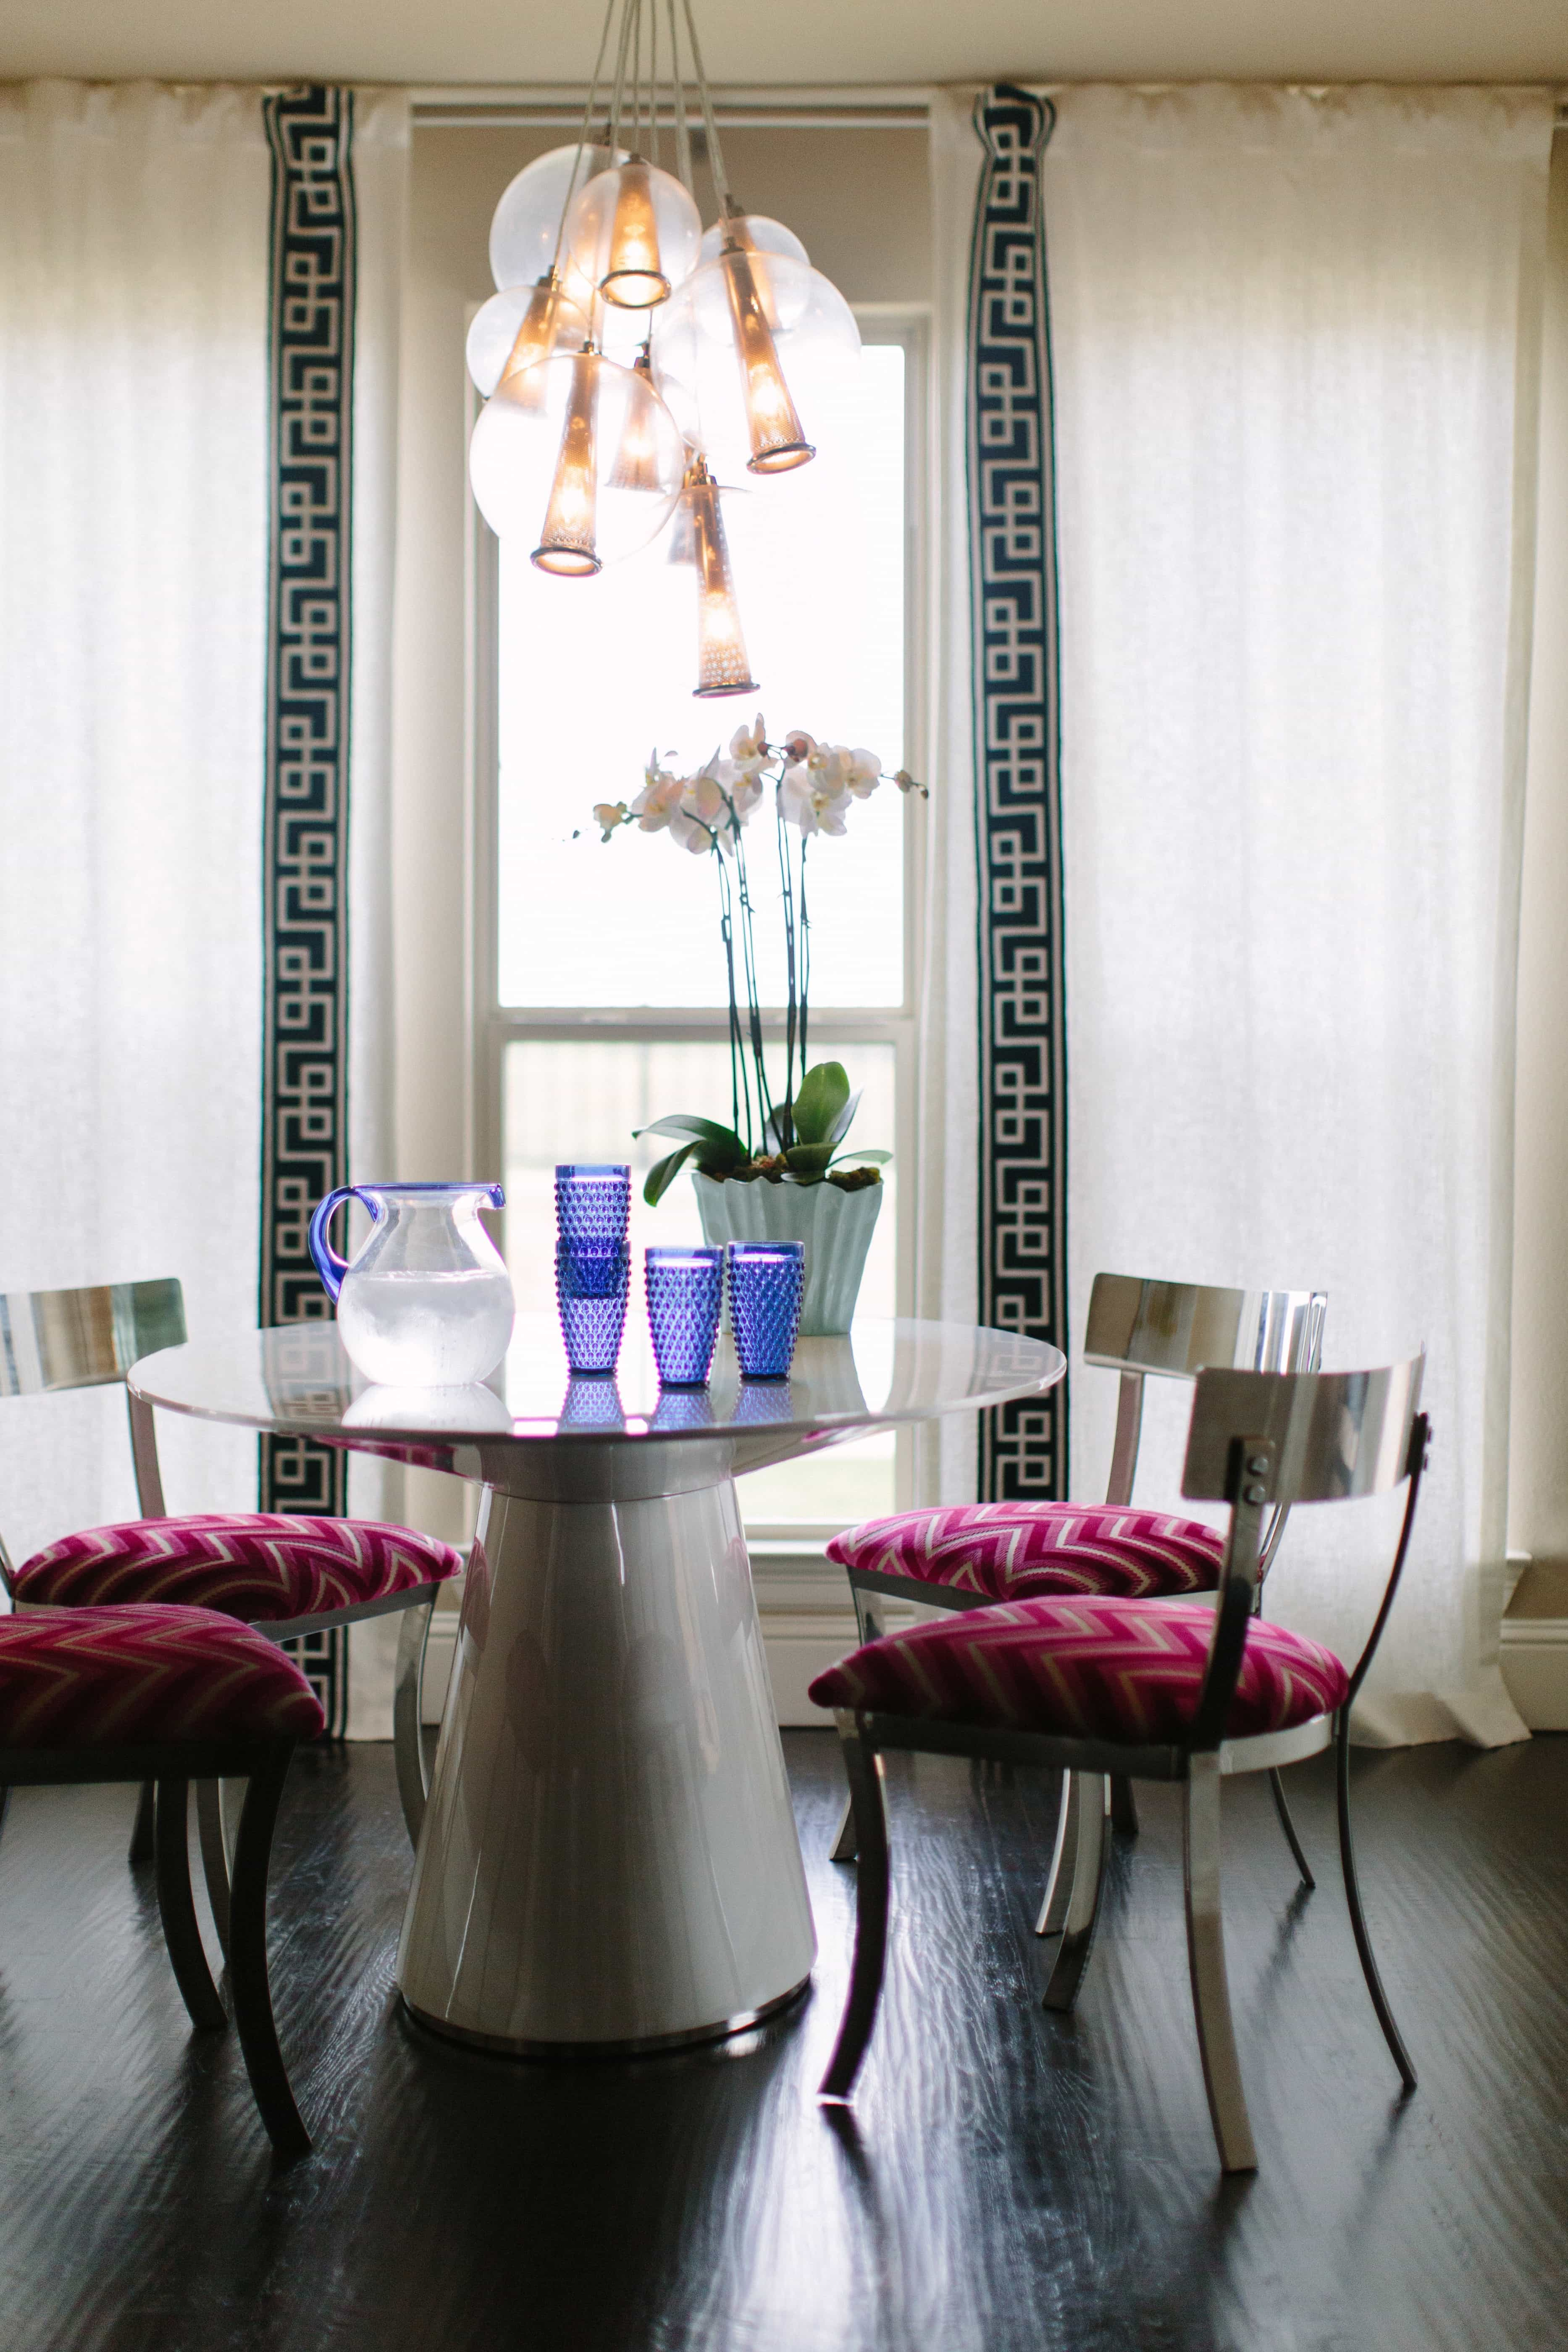 Featured Image of Shiny Metal Chairs And Polished Table For Art Decor Dining Room Decor